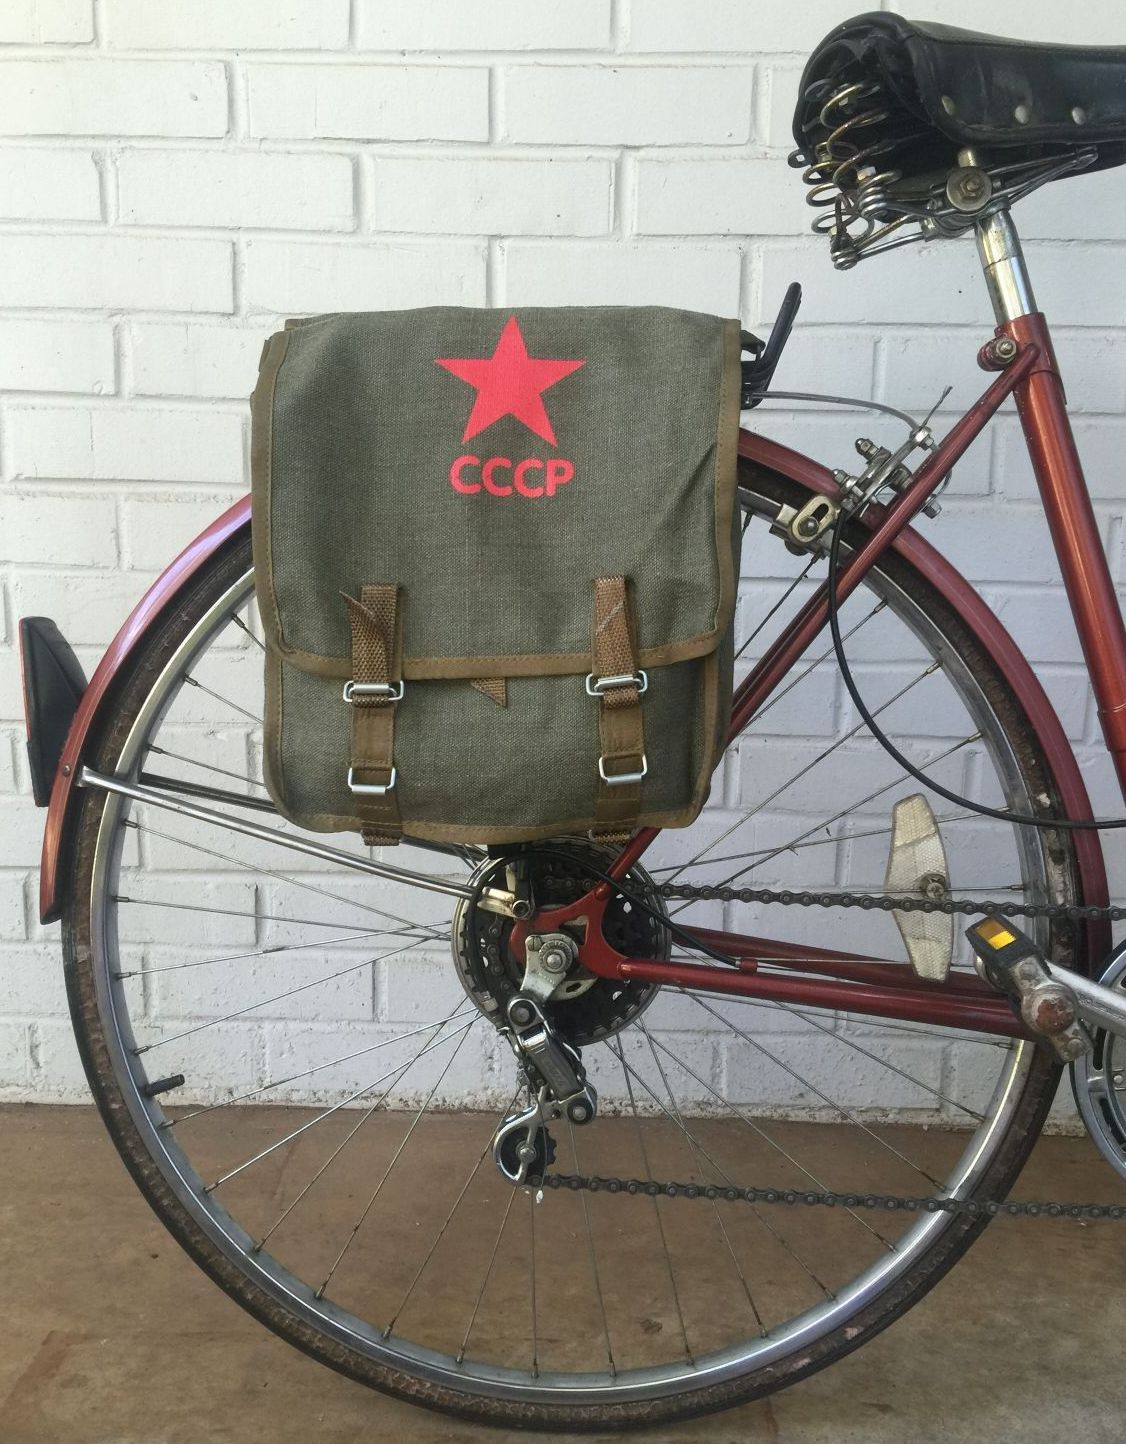 Panniers Military Surplus And Surplus Style Bags And Backpacks Hand Crafted Into Bicycle And Motorcycle Panniers Saddle Bags Re Purposed Upcycled Vintage